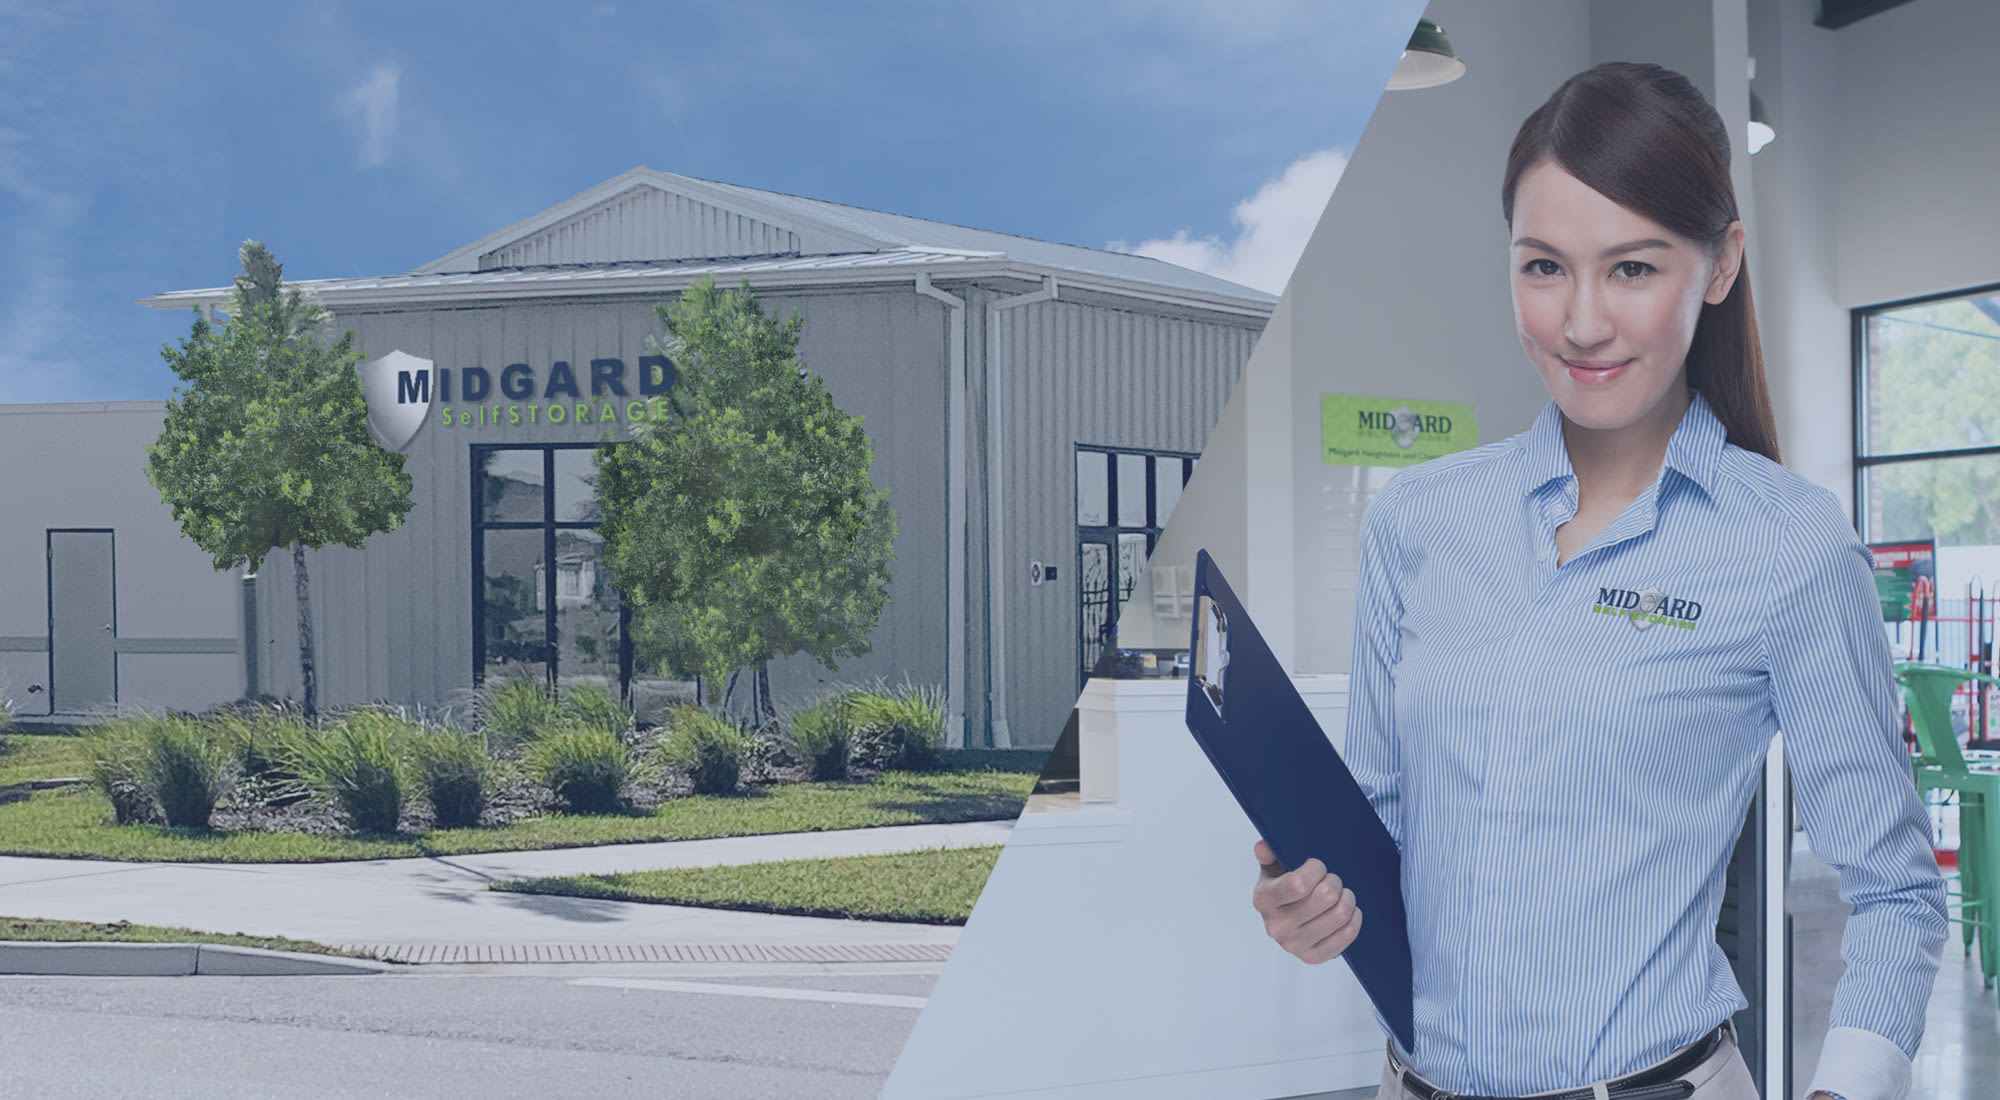 Midgard Self Storage in Murrells Inlet, South Carolina